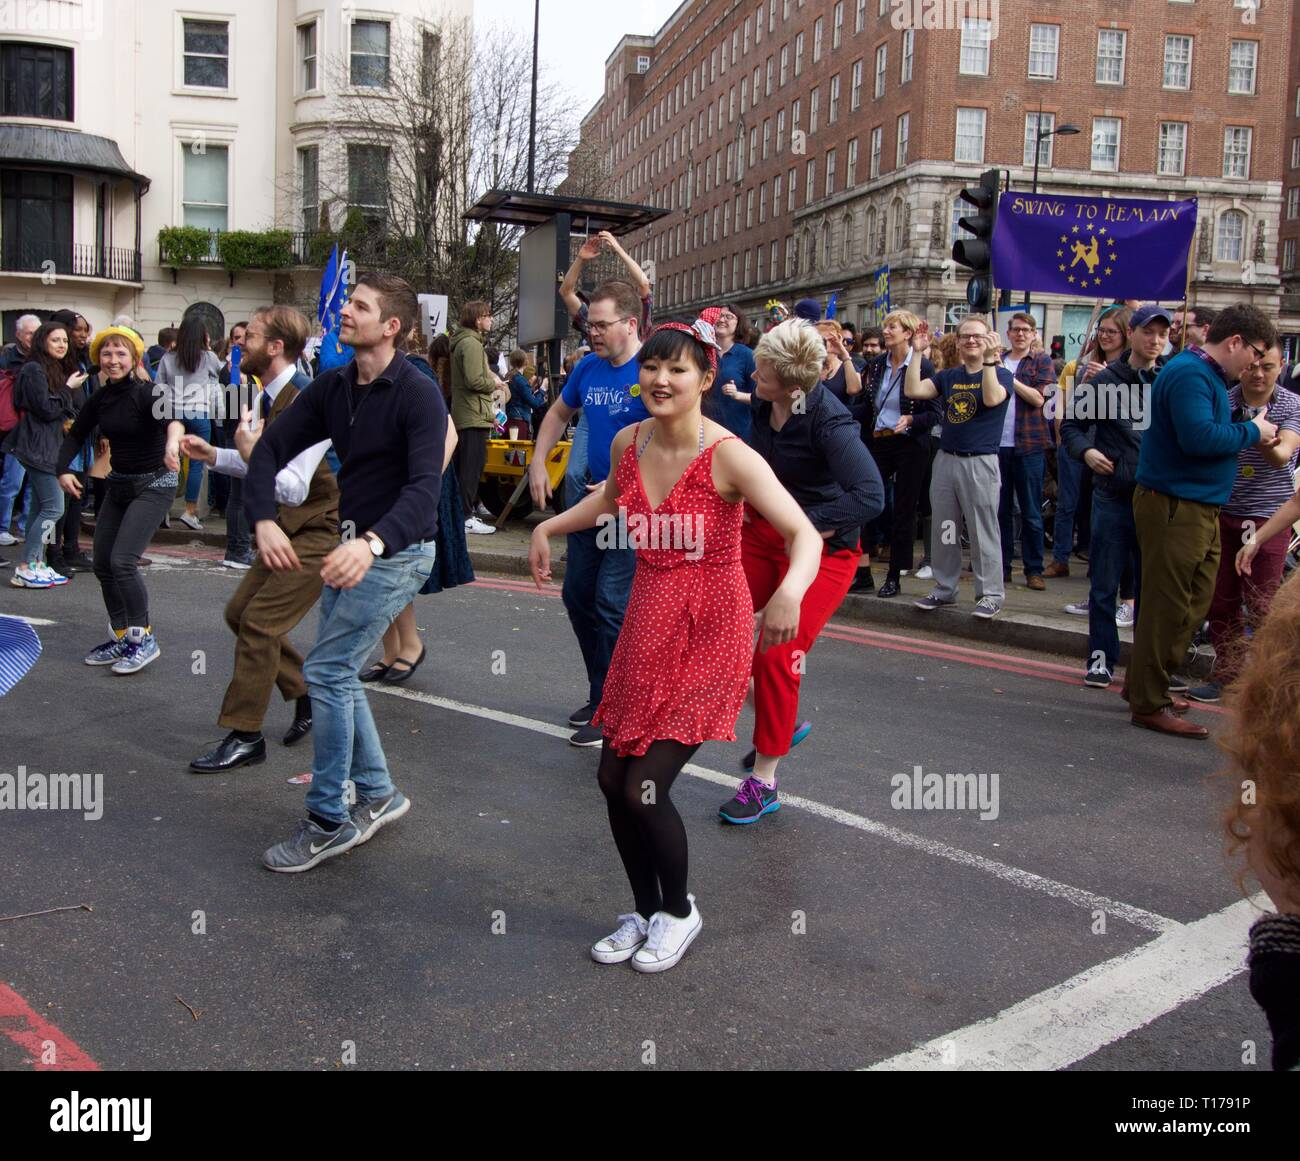 Girl dancing in the street at Swing for Remain during the Revoke Article 50 march - Stock Image